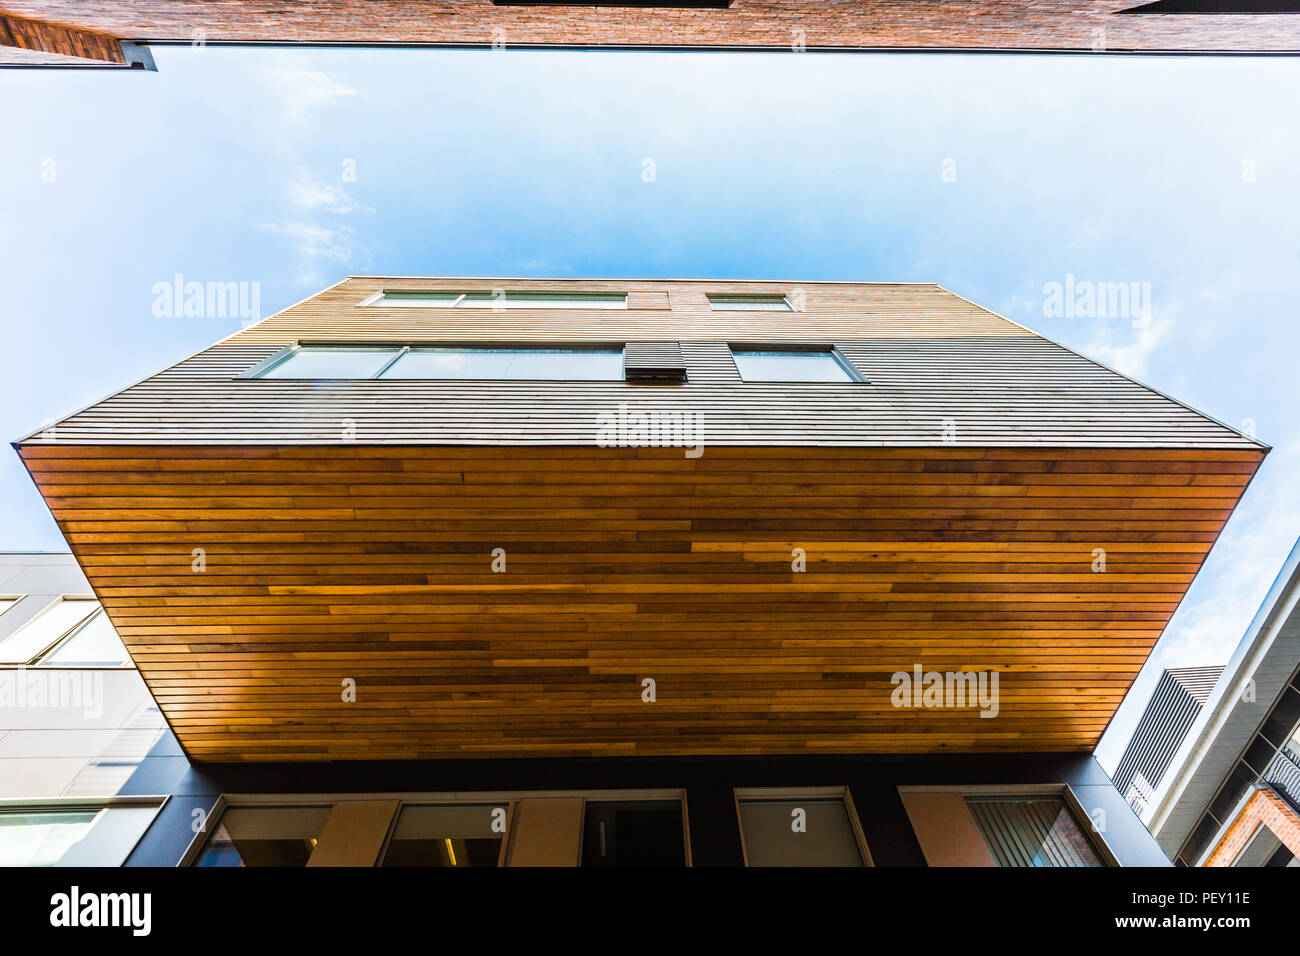 An example of a cantilever architecture with an external floating room on the side of a multi story building with wooden floor and walls - Stock Image